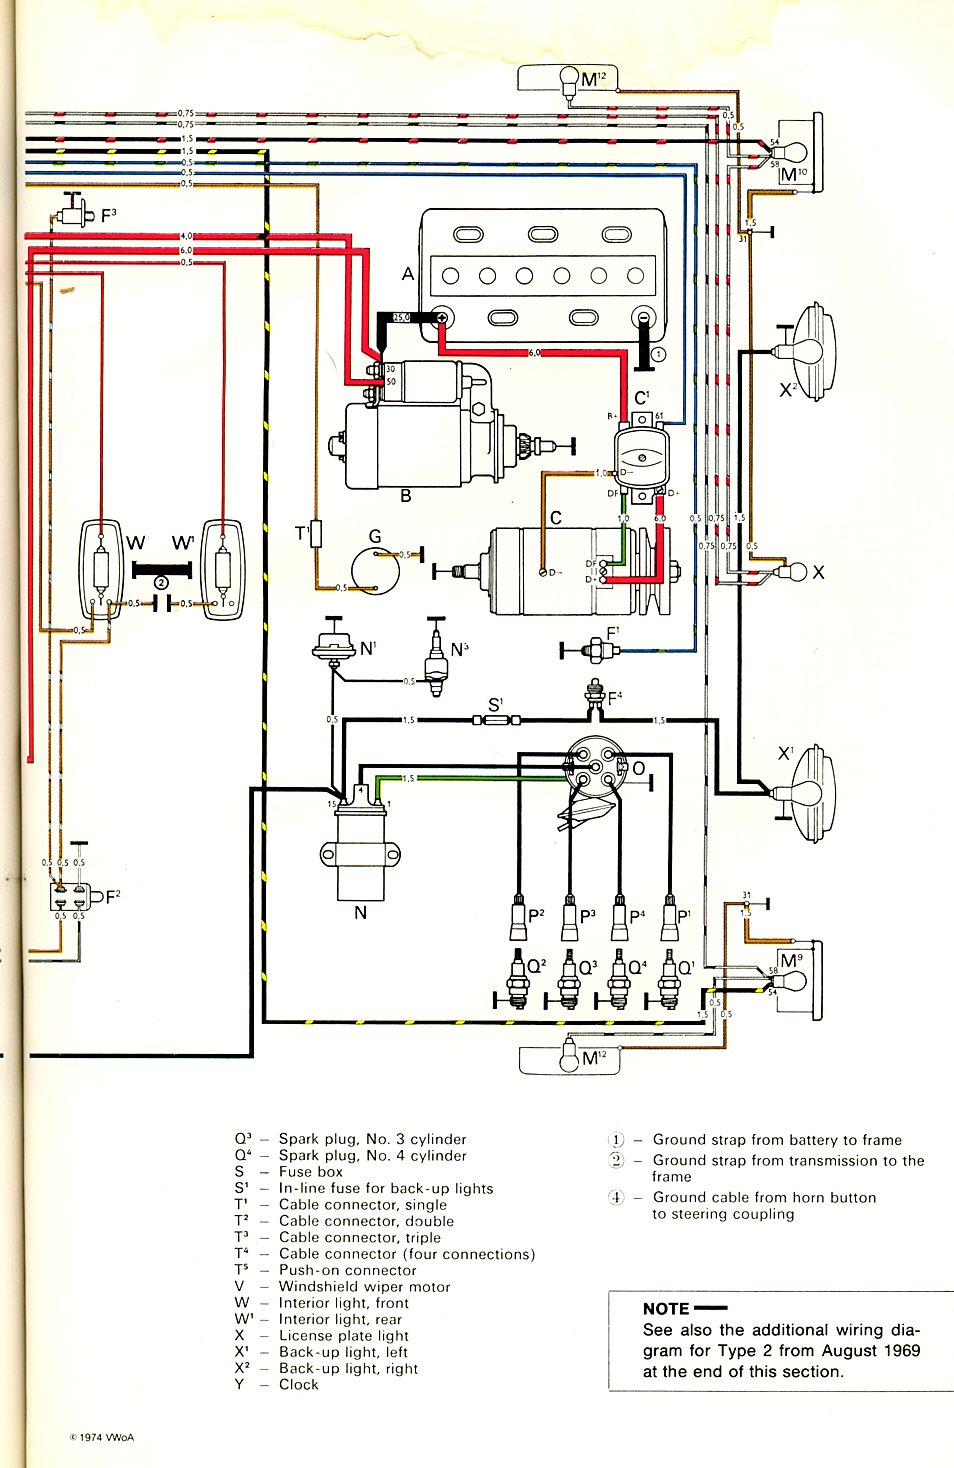 Type 2 Wiring Diagrams 68 Camaro Horn Diagram